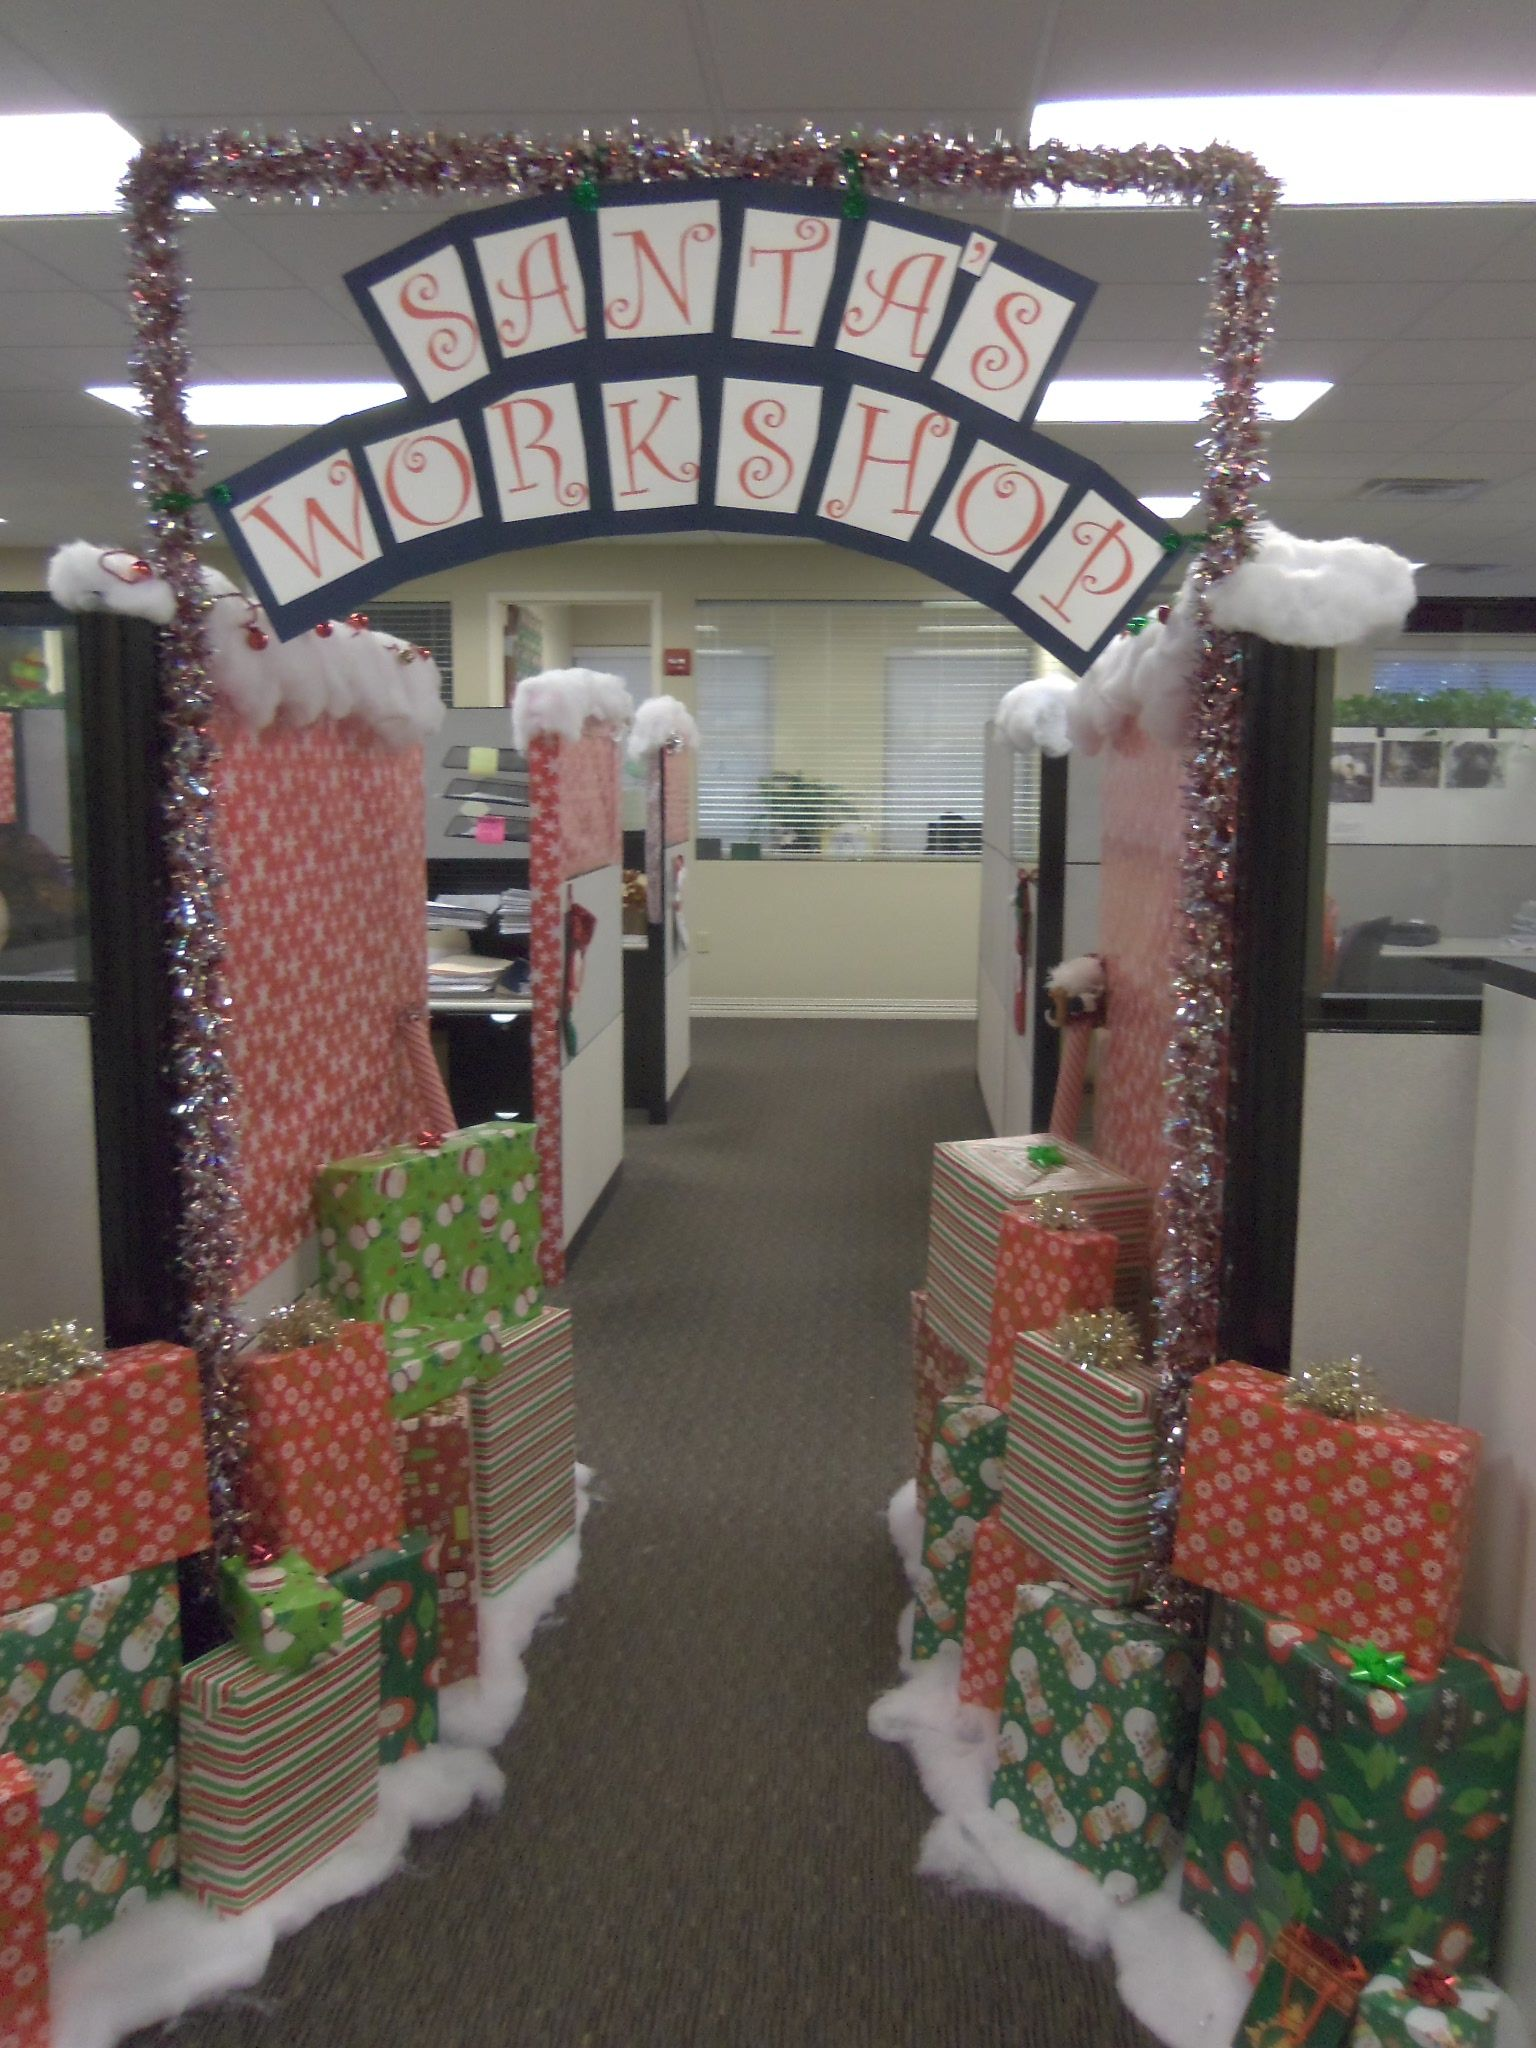 christmas decorations can boost morale at the office leland management embraces the season and encourages the holiday spirit - Christmas Decoration Ideas For Office